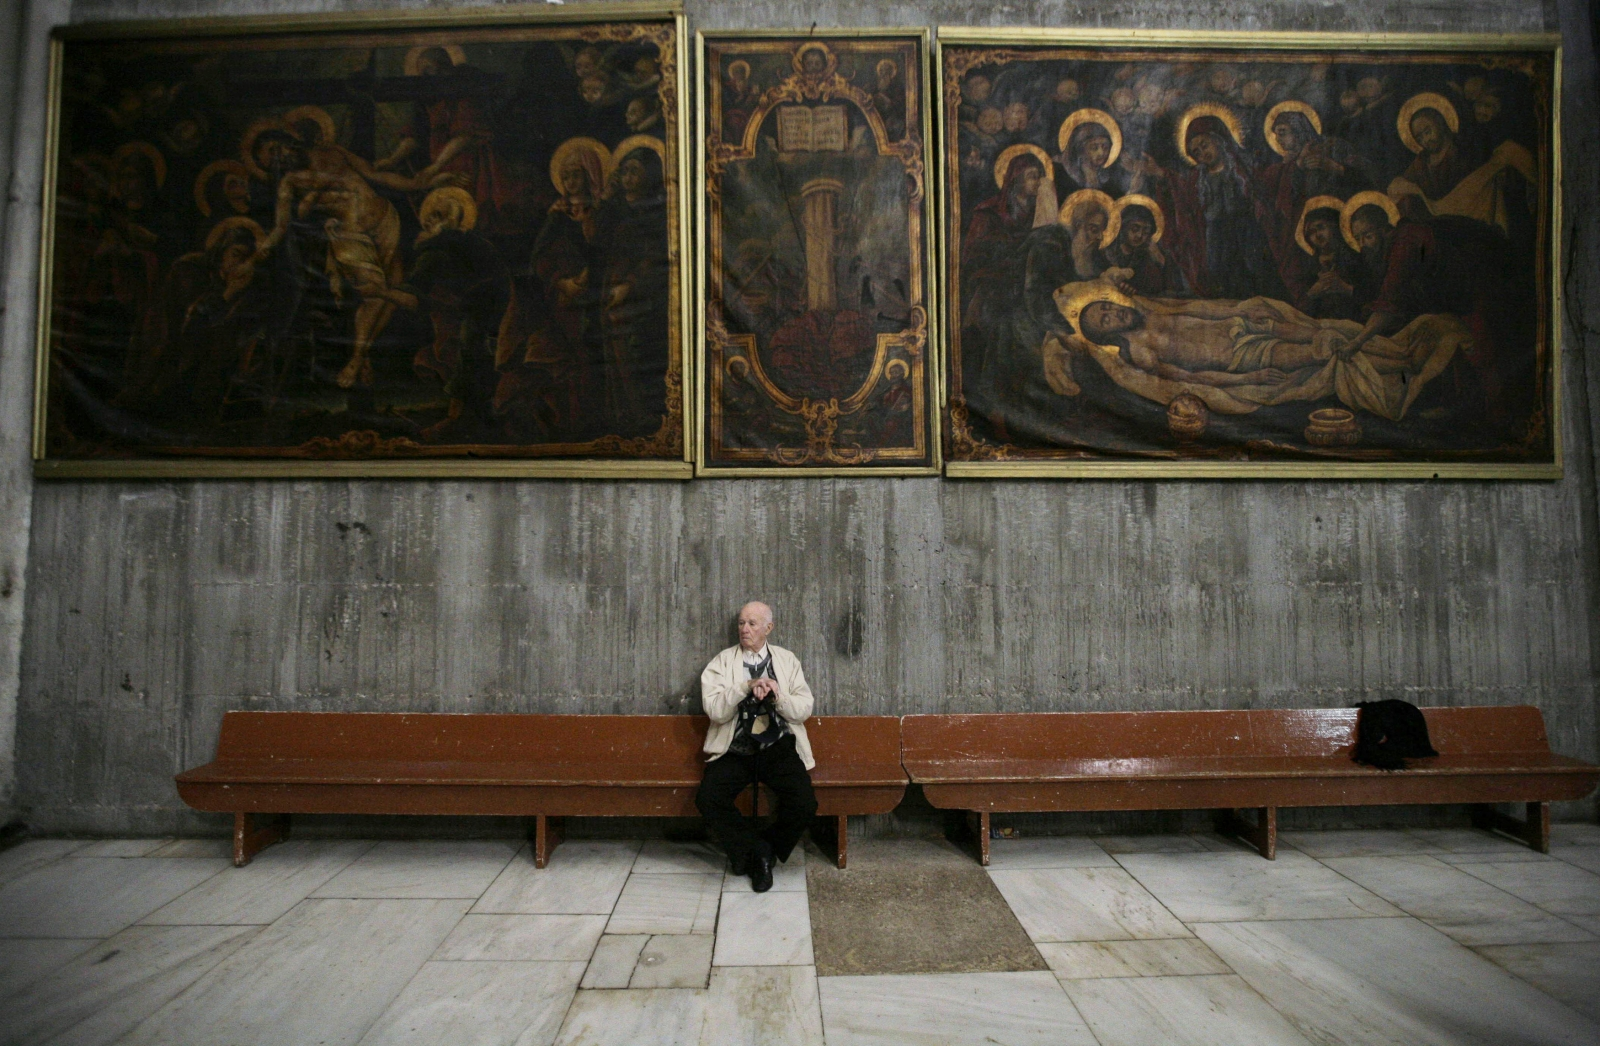 A tourist rests during a visit at the Church of the Holy Sepulchre in Jerusalem's Old City